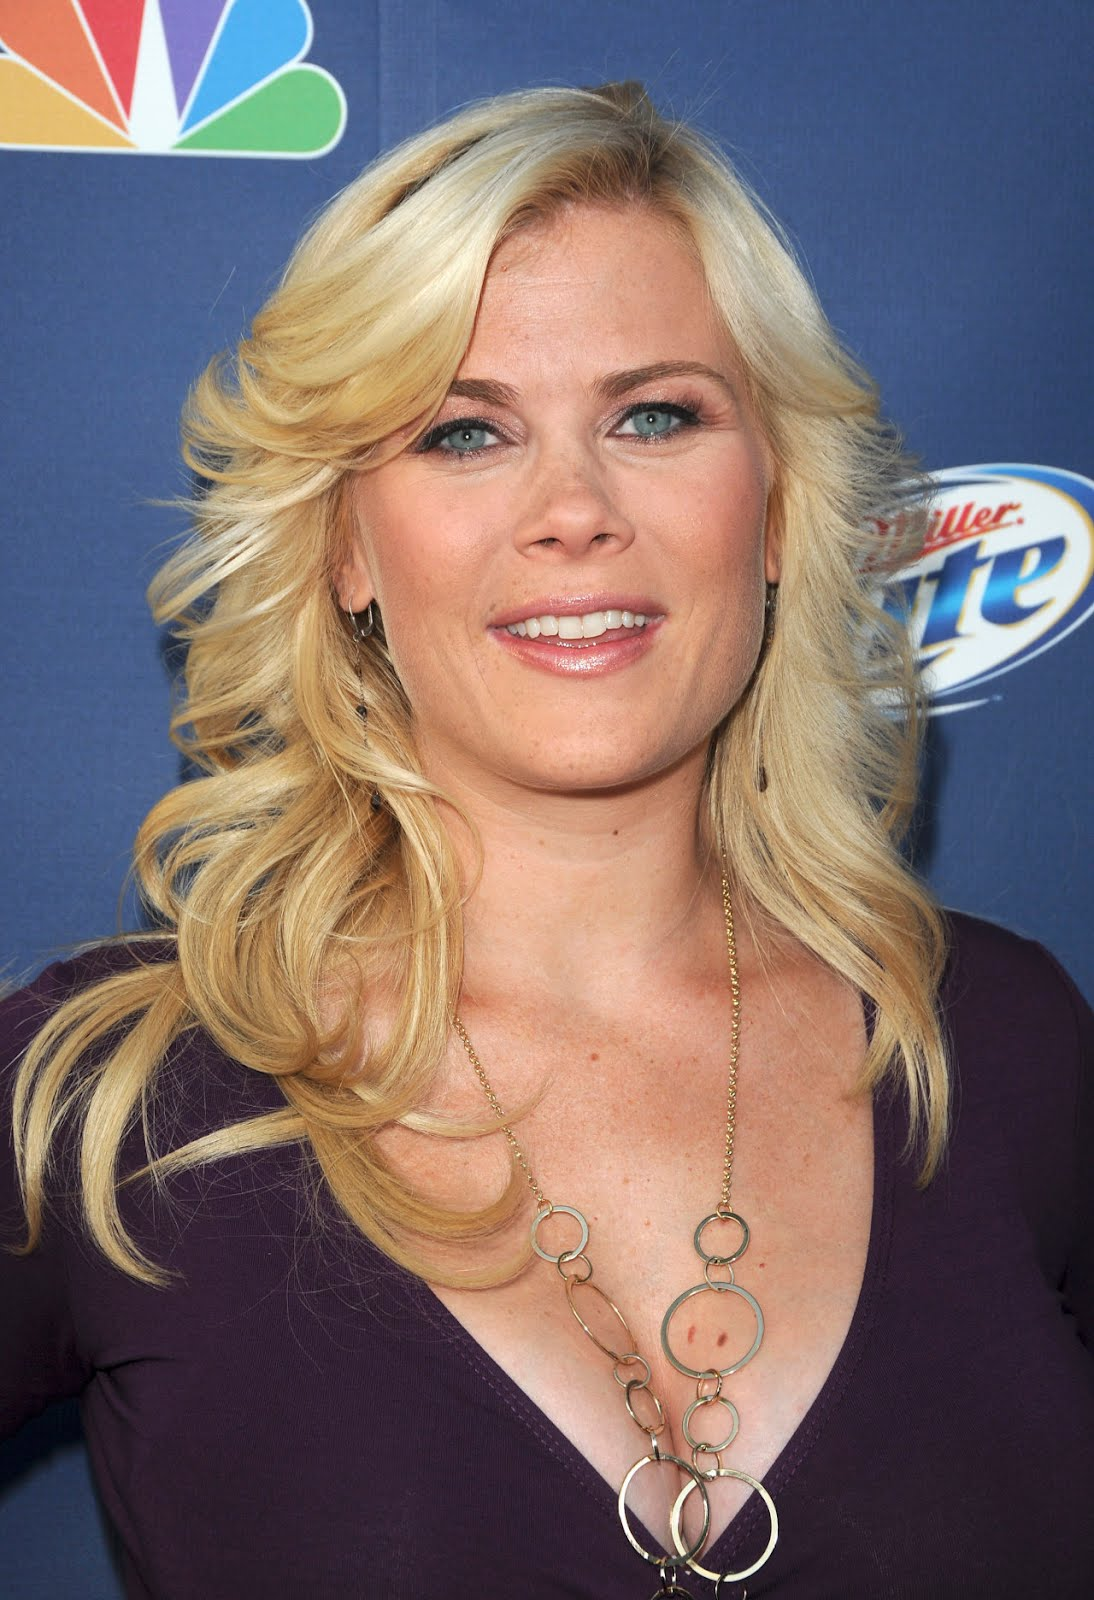 Alison Sweeney leaves Days of Our Lives